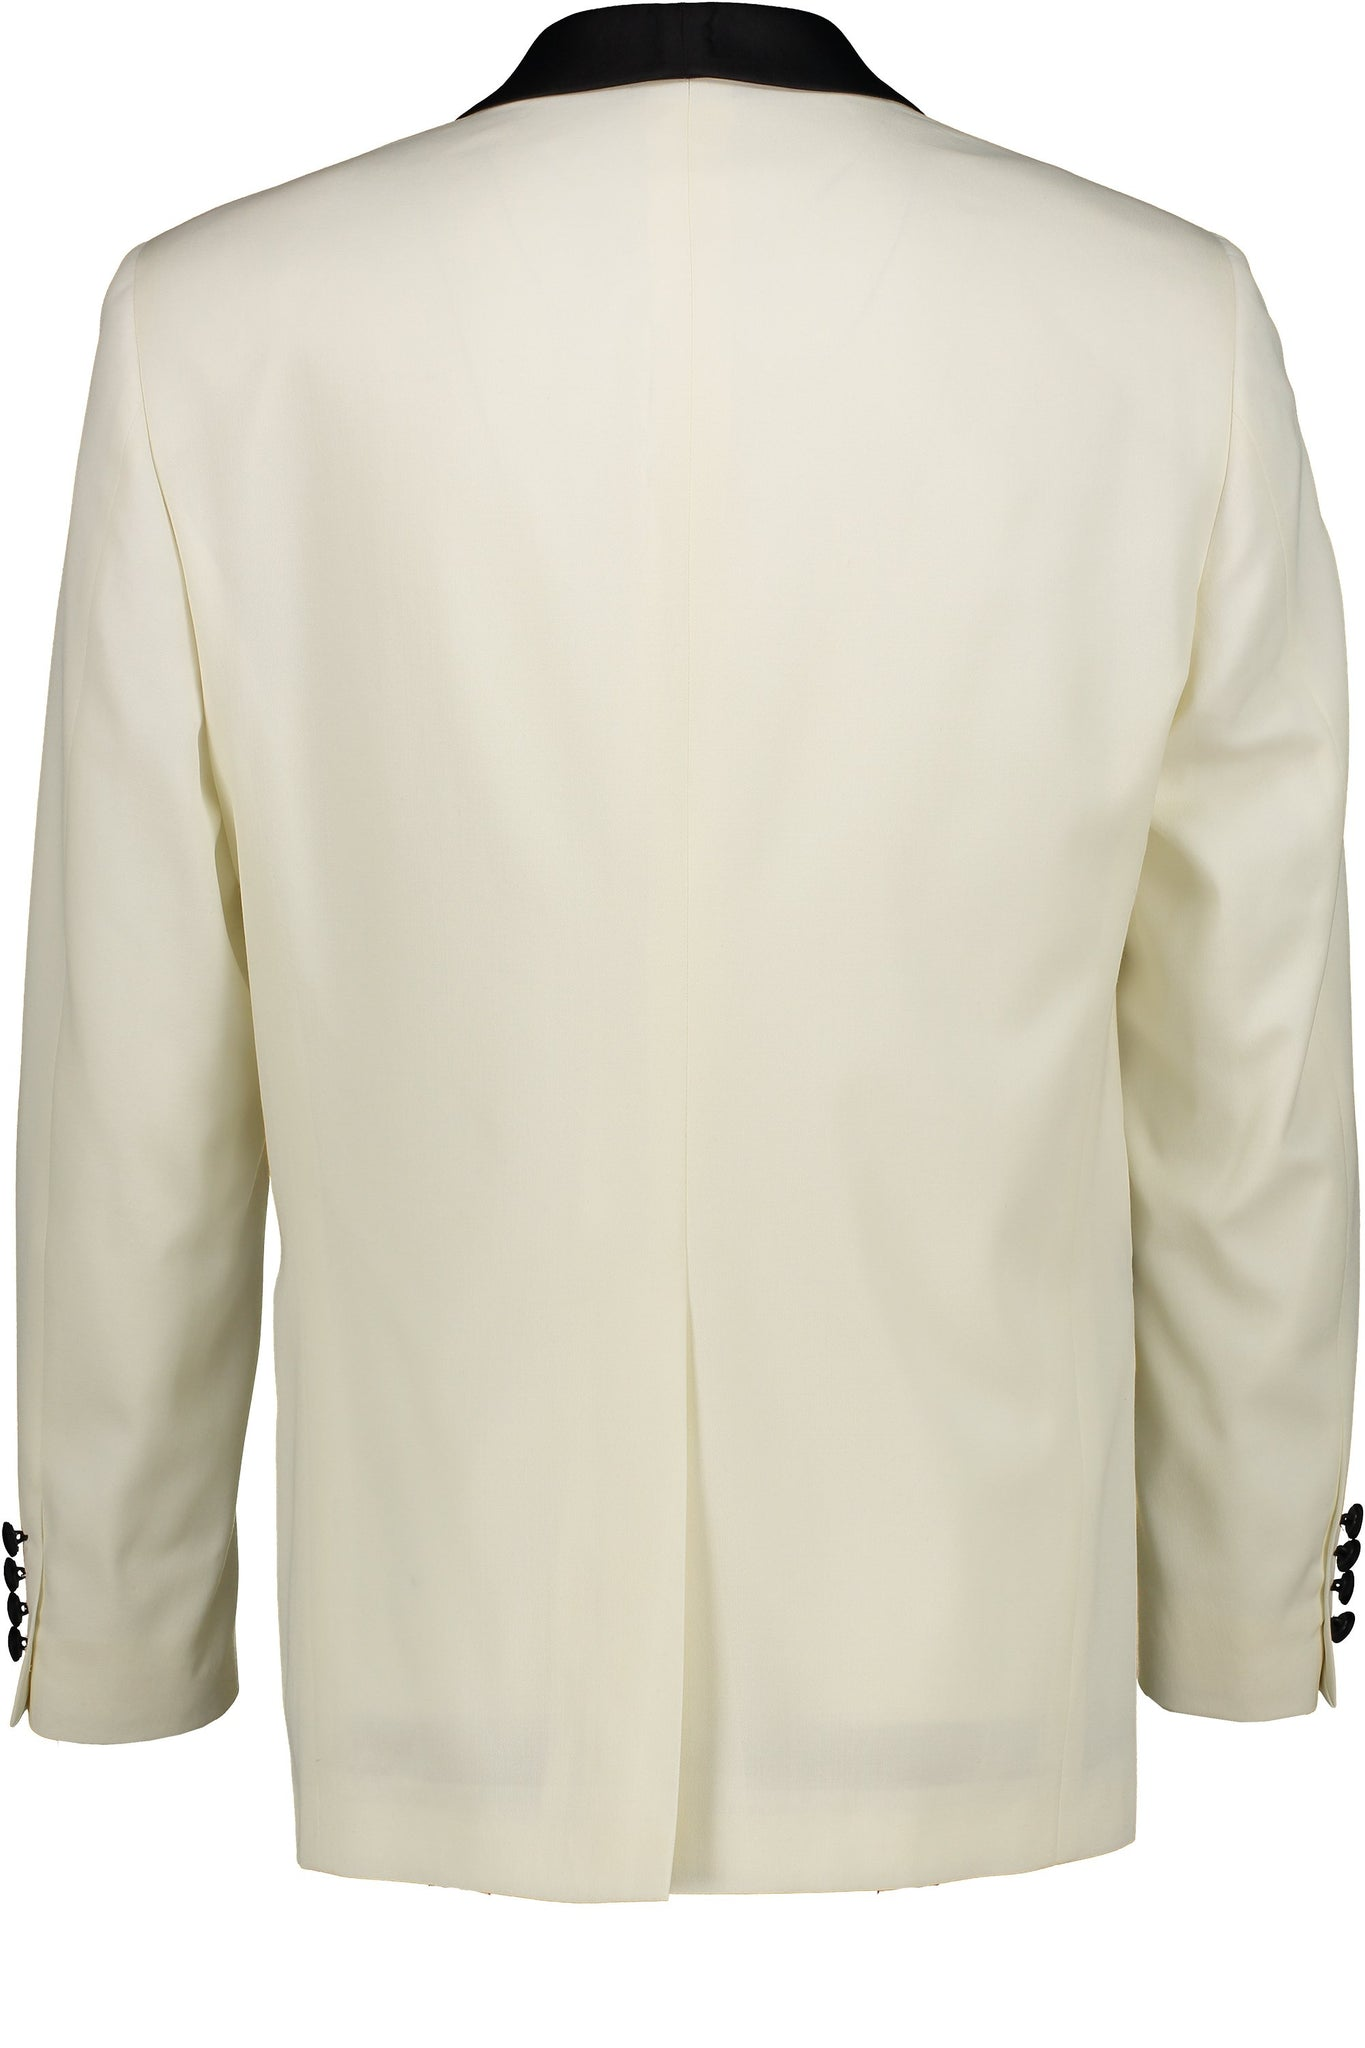 Classic Fit Ivory Wool Dinner Jacket with Black Satin Shawl Collar -  Hardwick.com